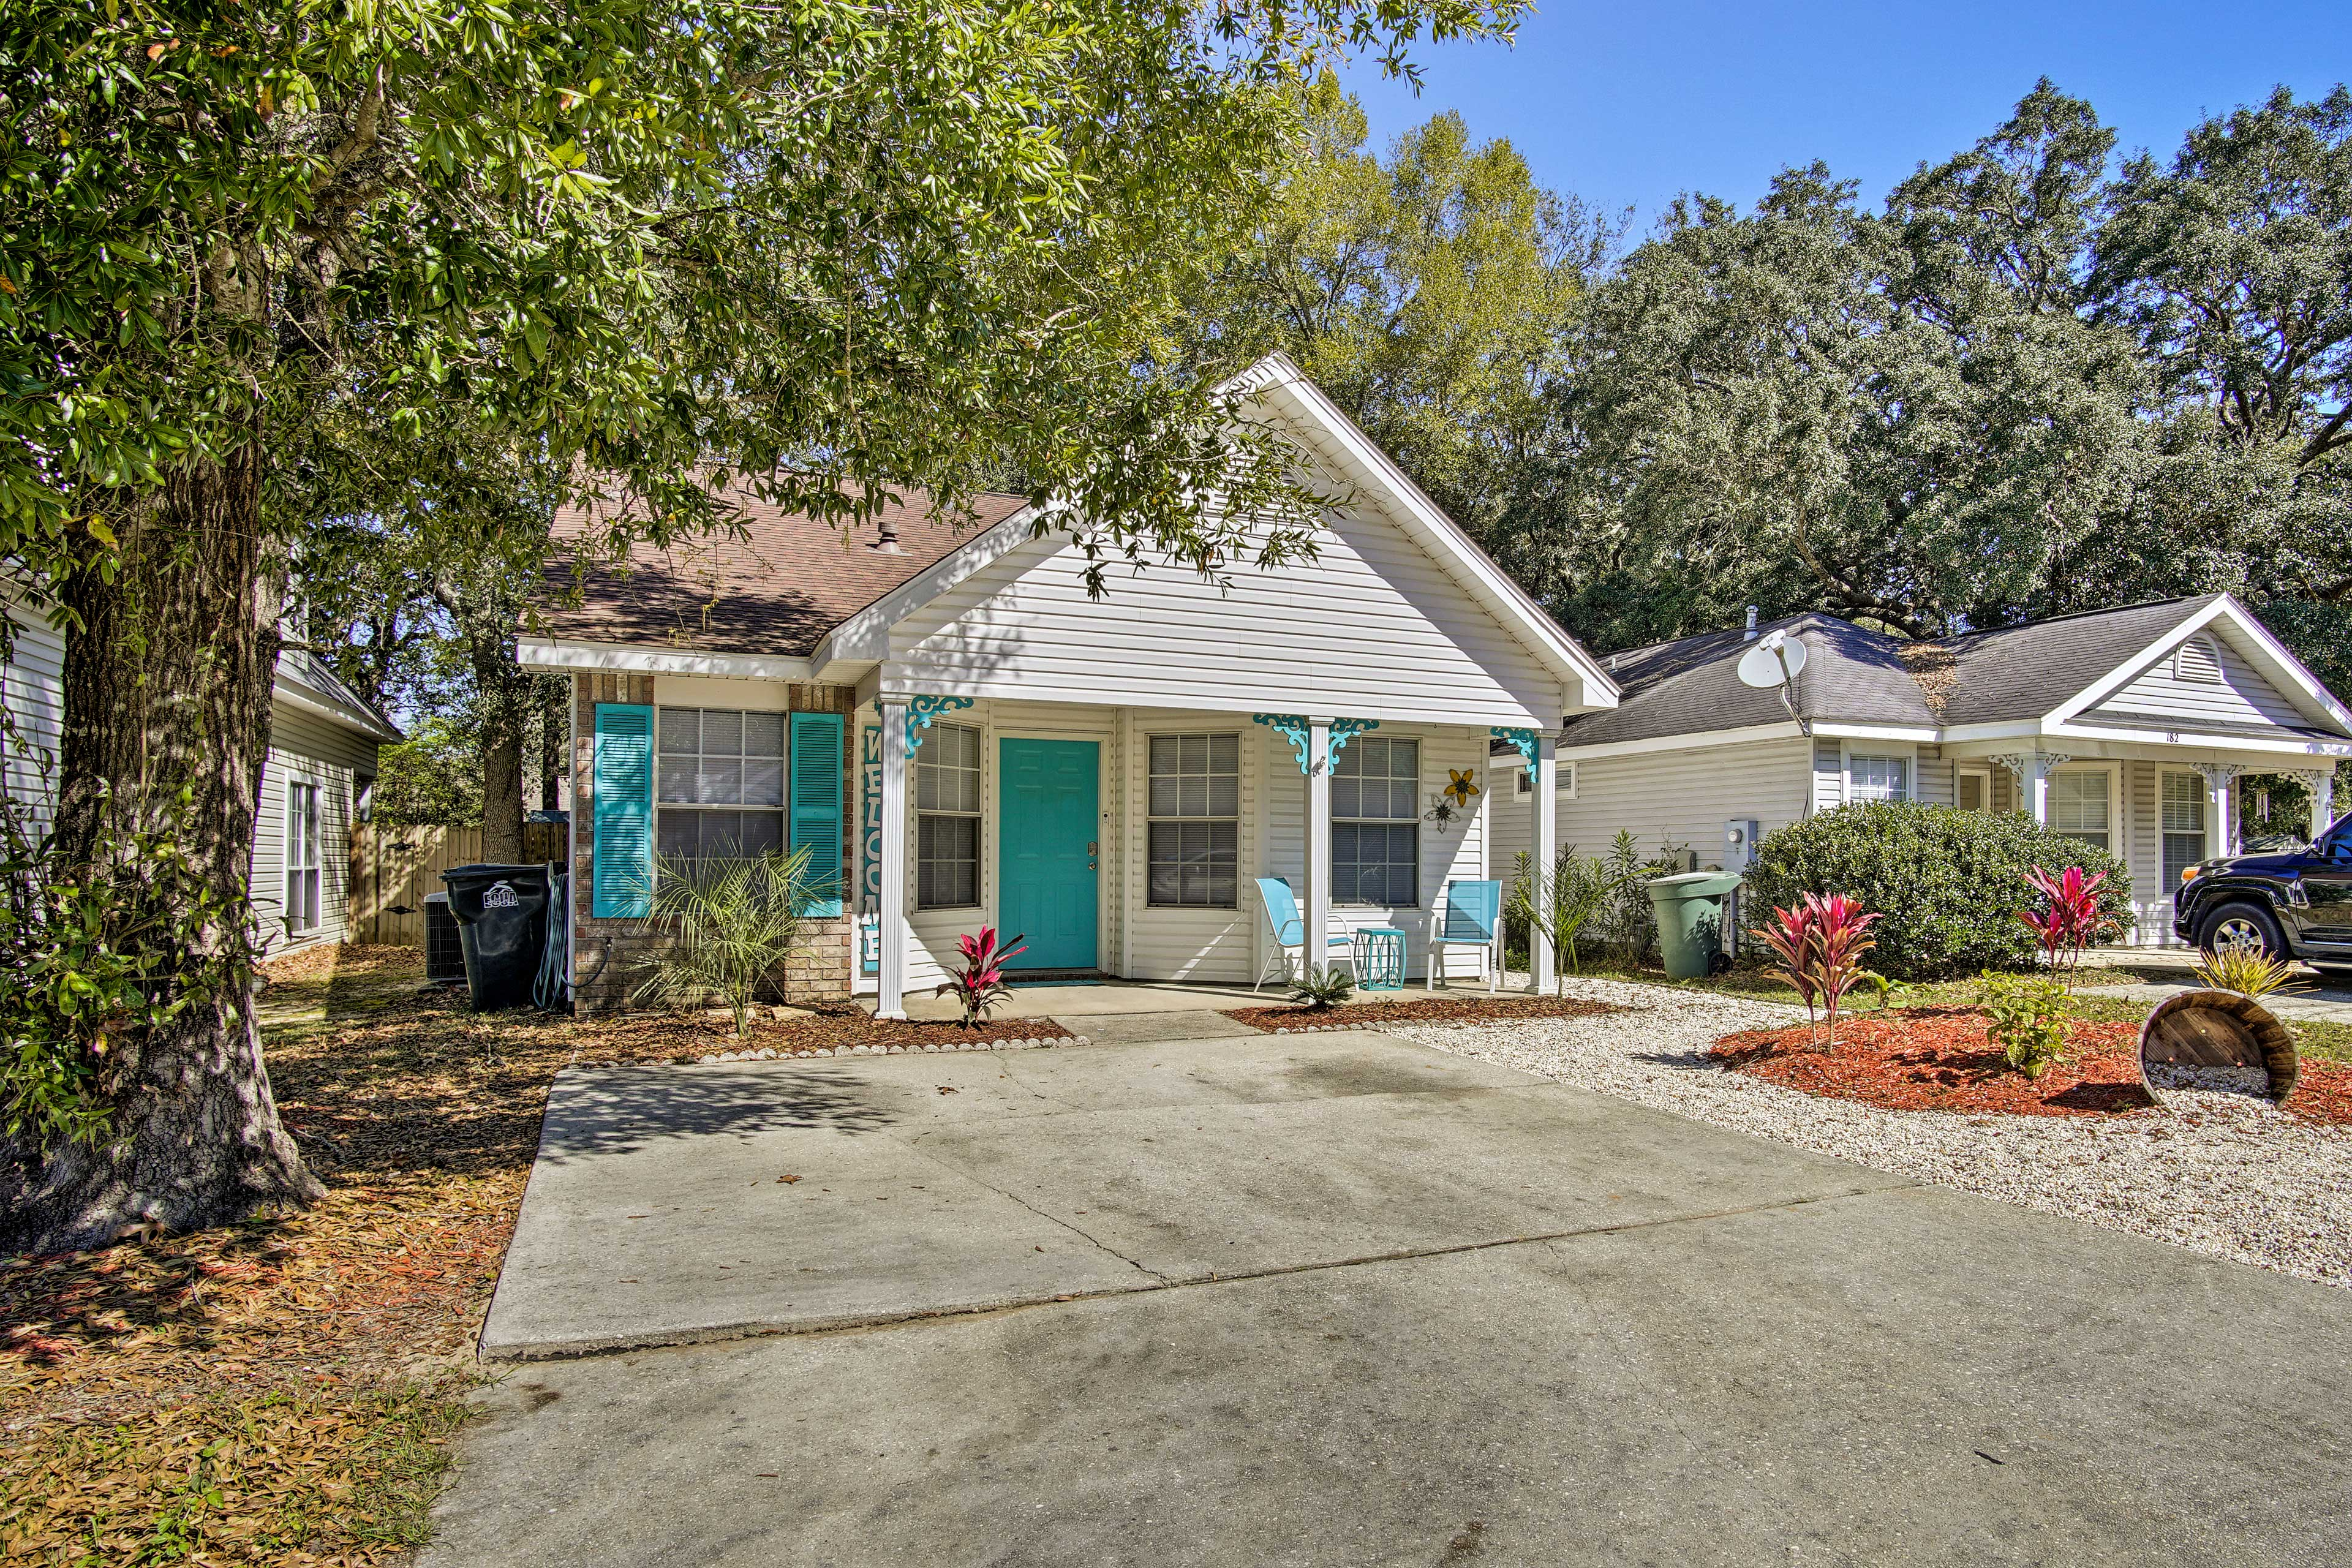 The porch is complete with turquoise accents that mimic colors in Escambia Bay!